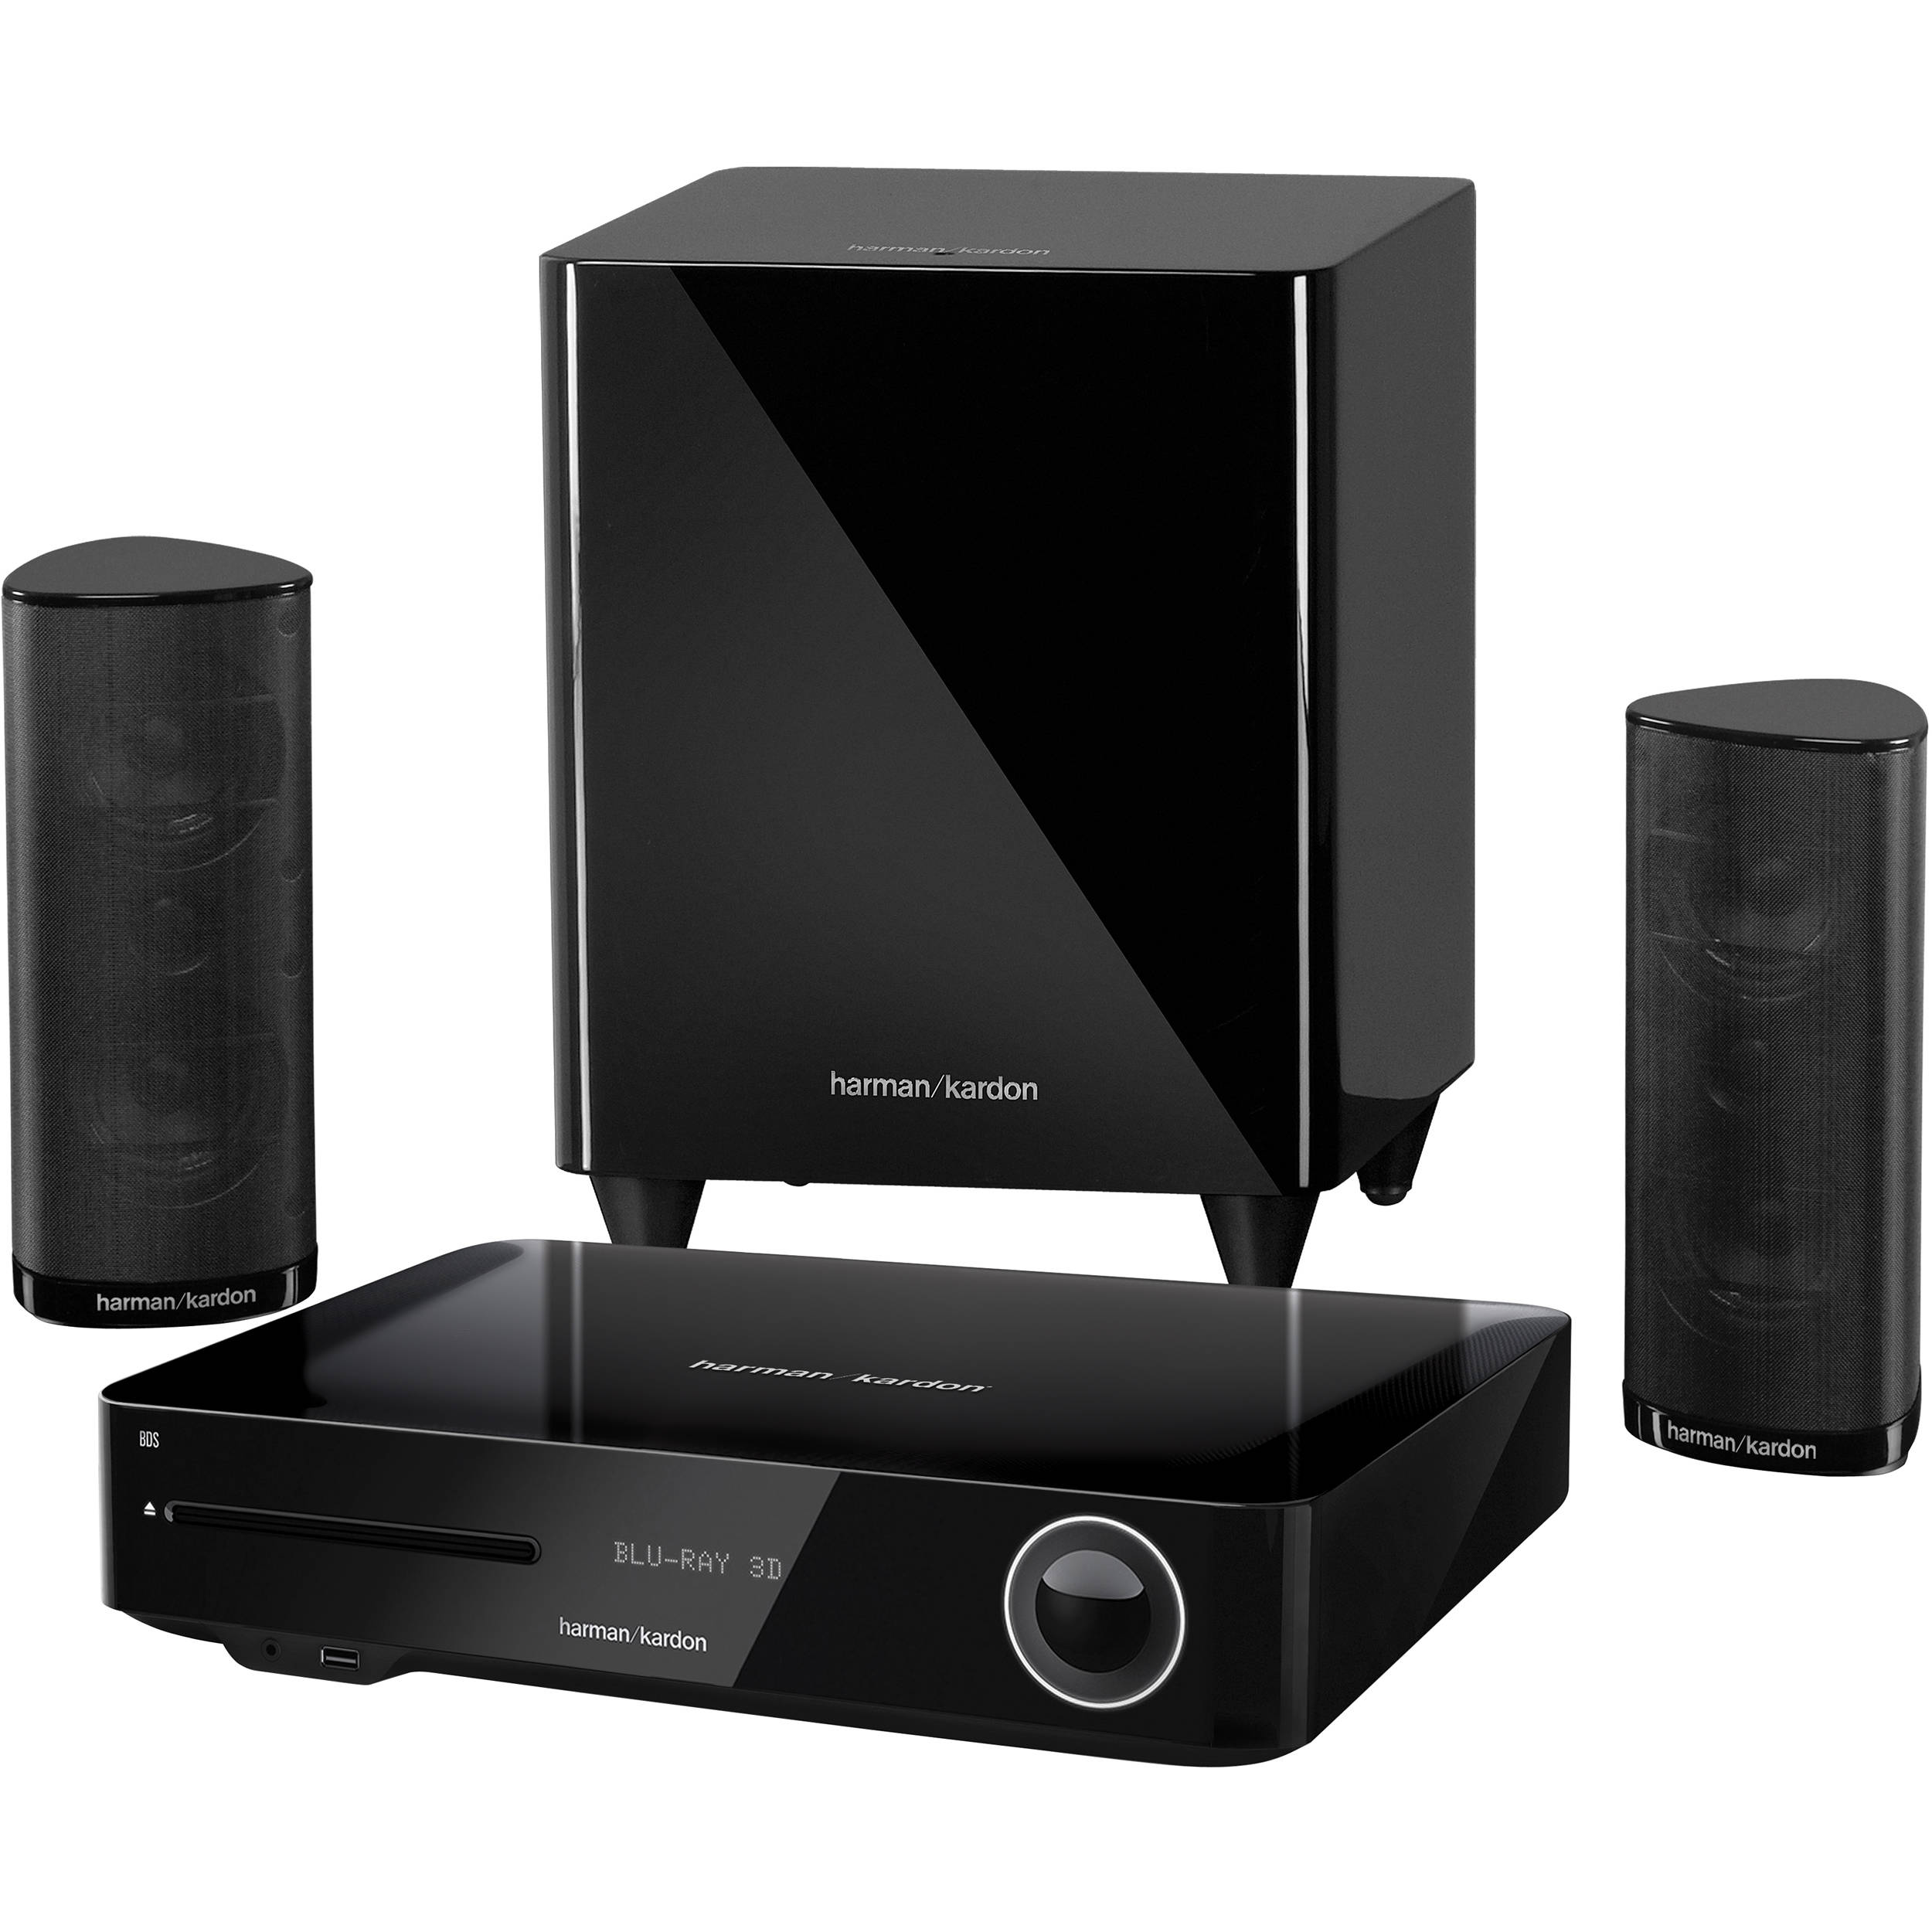 Harman Kardon Bds 280 Price.Harman Kardon Bds 380 High Performance 2 1 Channel Networked 3d Blu Ray Disc System